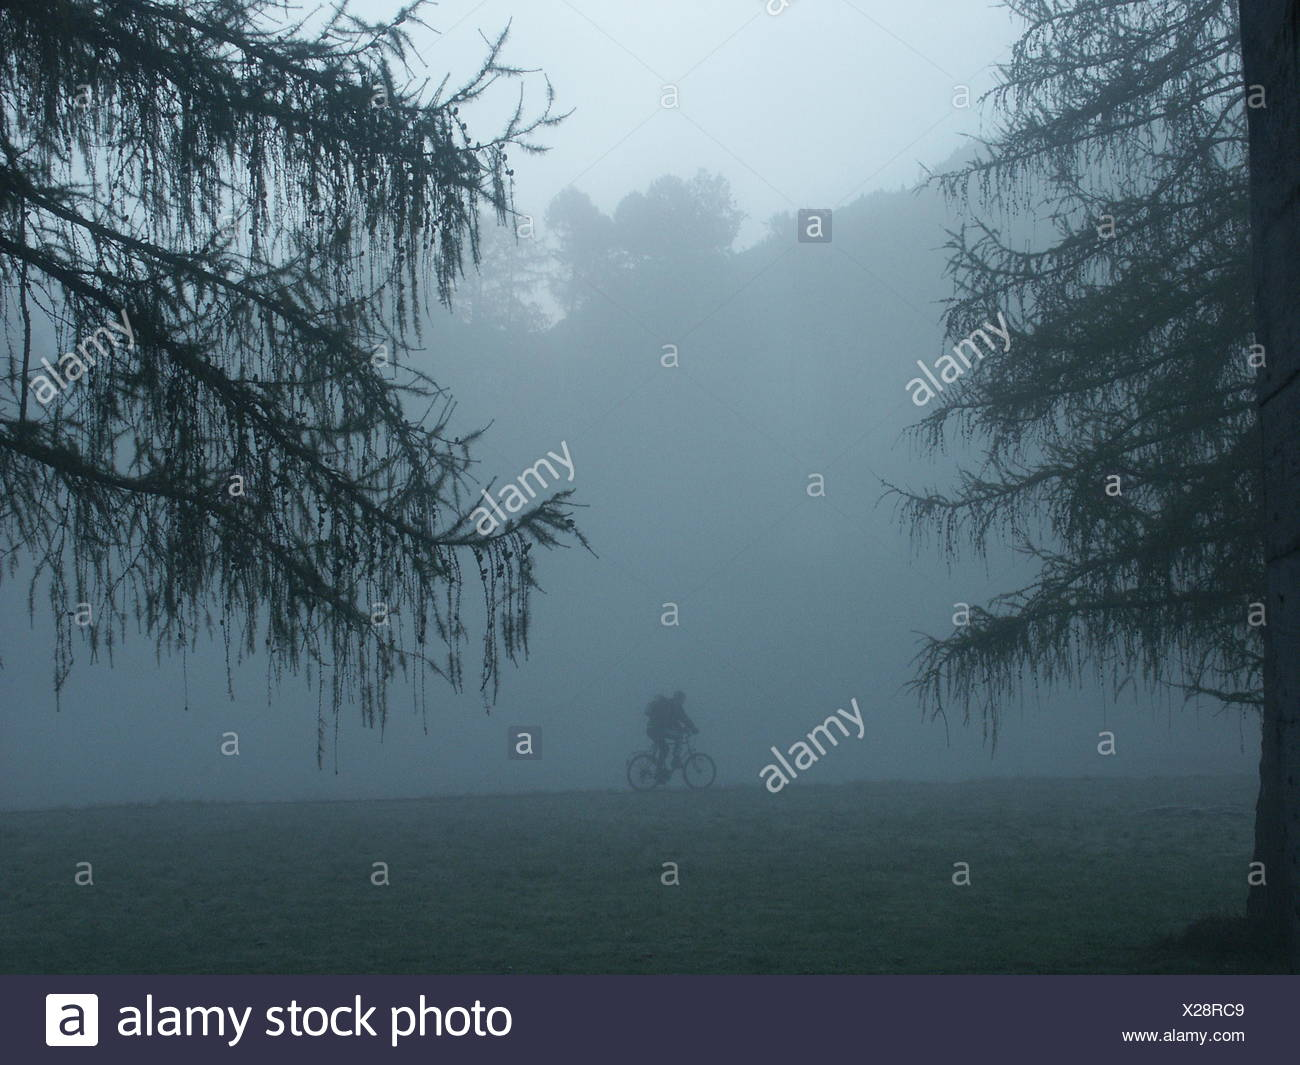 cyclists in the fog - Stock Image